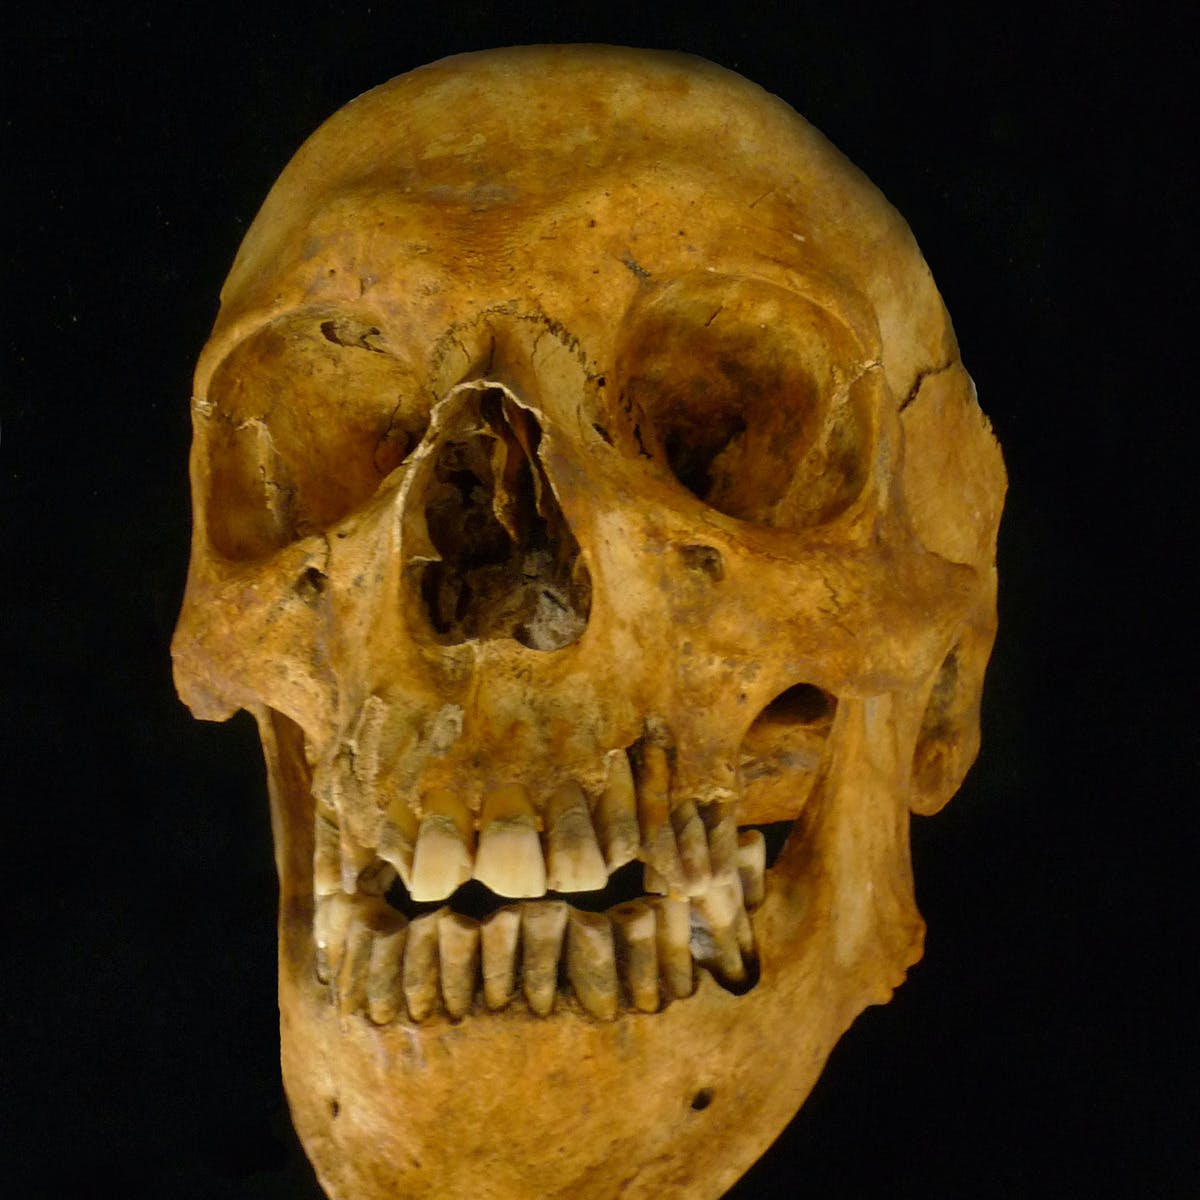 Osteoarchaeology: The Truth in Our Bones